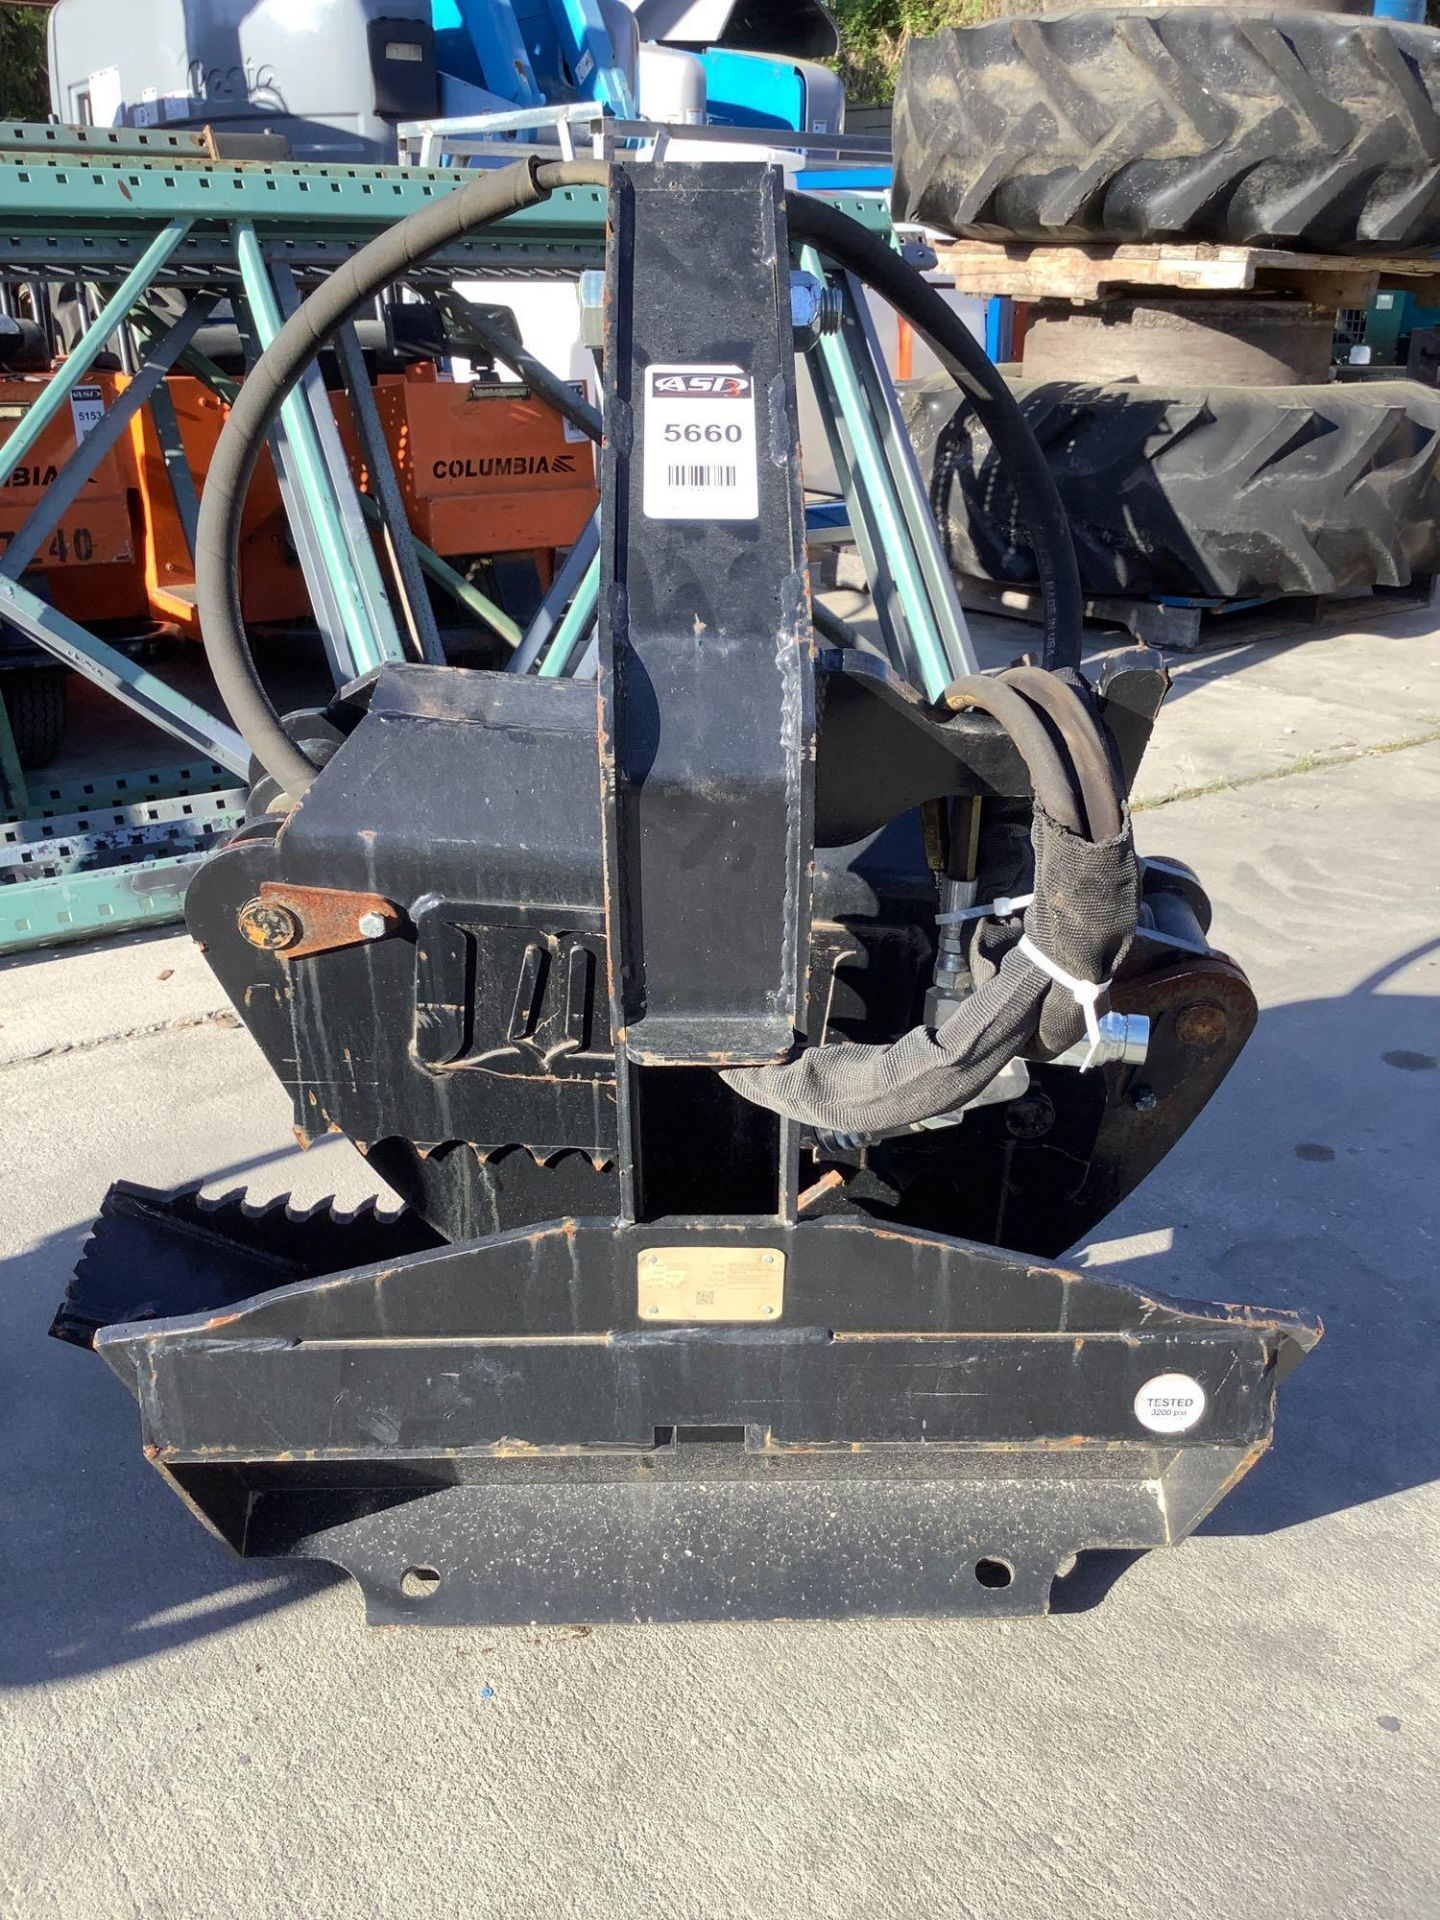 LOG GRAPPLE ATTACHMENT FOR SKID STEER/EQUIPMENT - Image 4 of 8